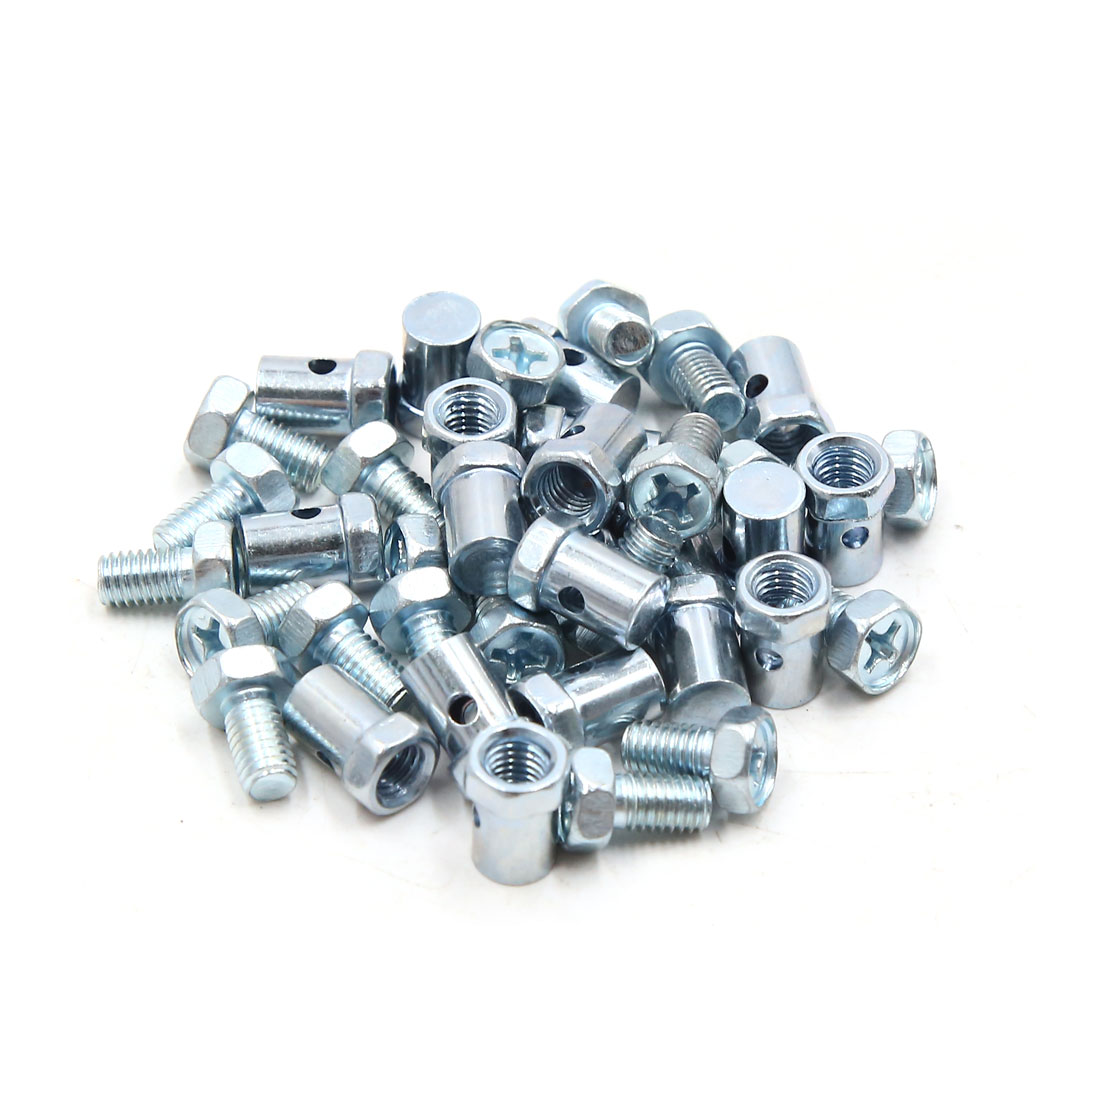 20pcs 5mm Thread Motorcycle Scooter Brake Cable Wire Solderless Nipple Screws